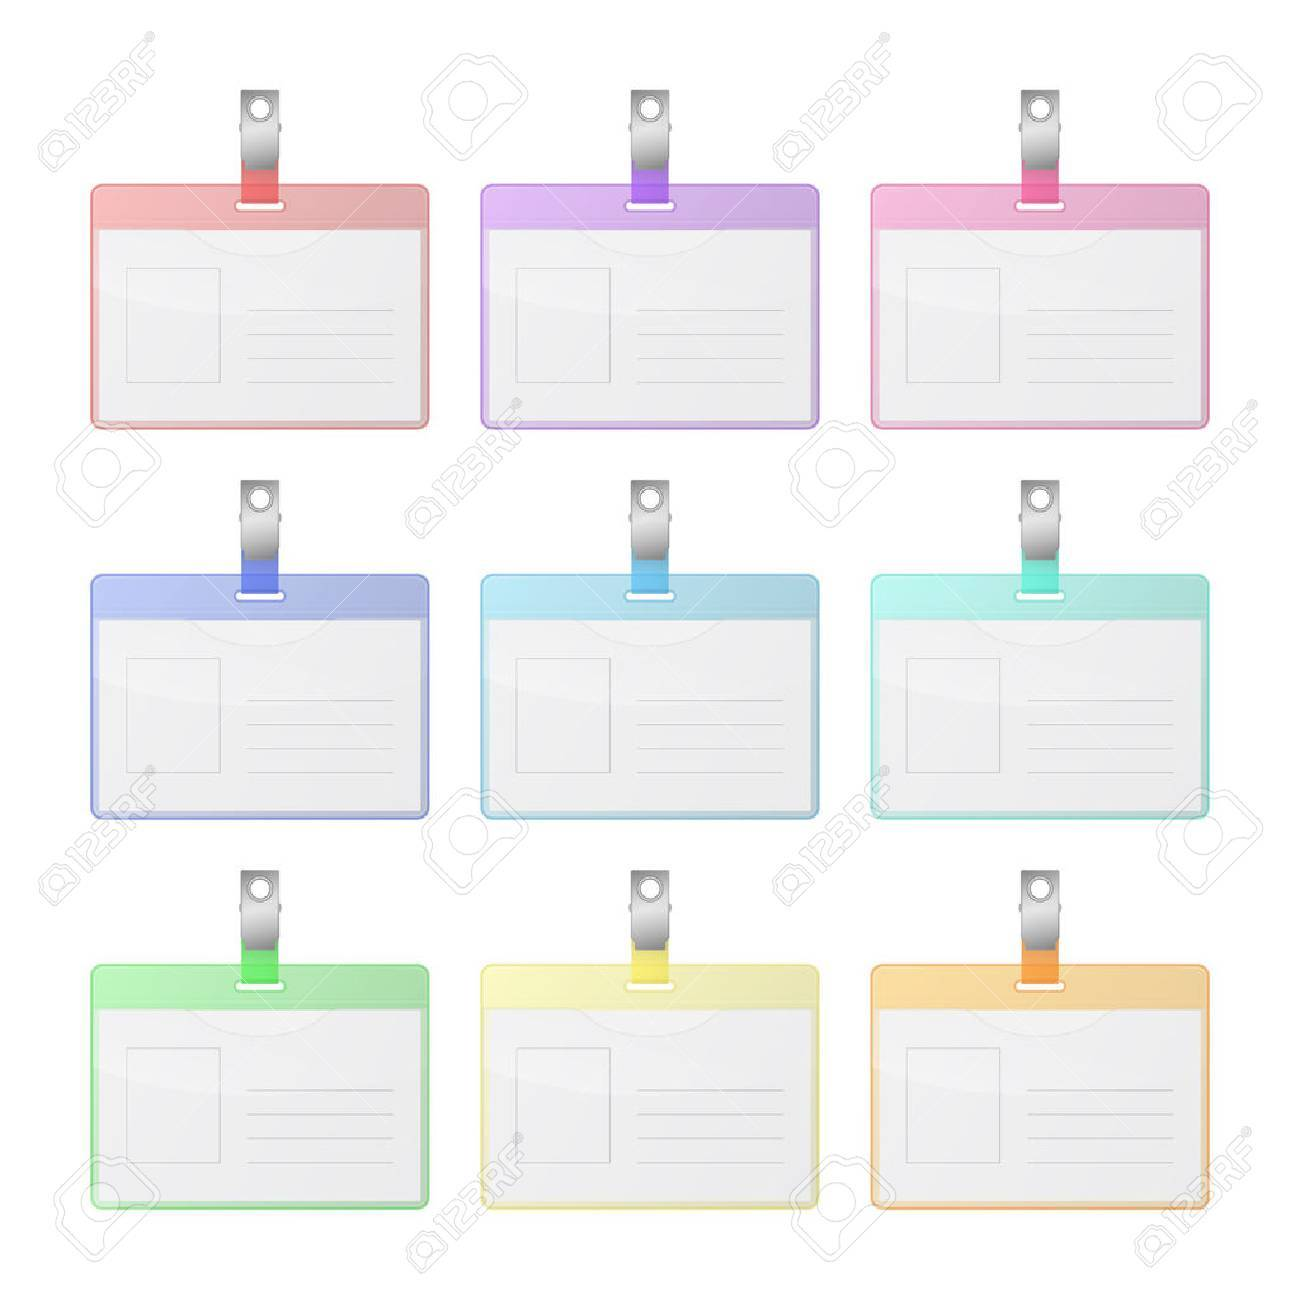 Set of colorful transparent identification cards with place for photo and text. Isolated on white background. Vector EPS10 illustration. - 37543050